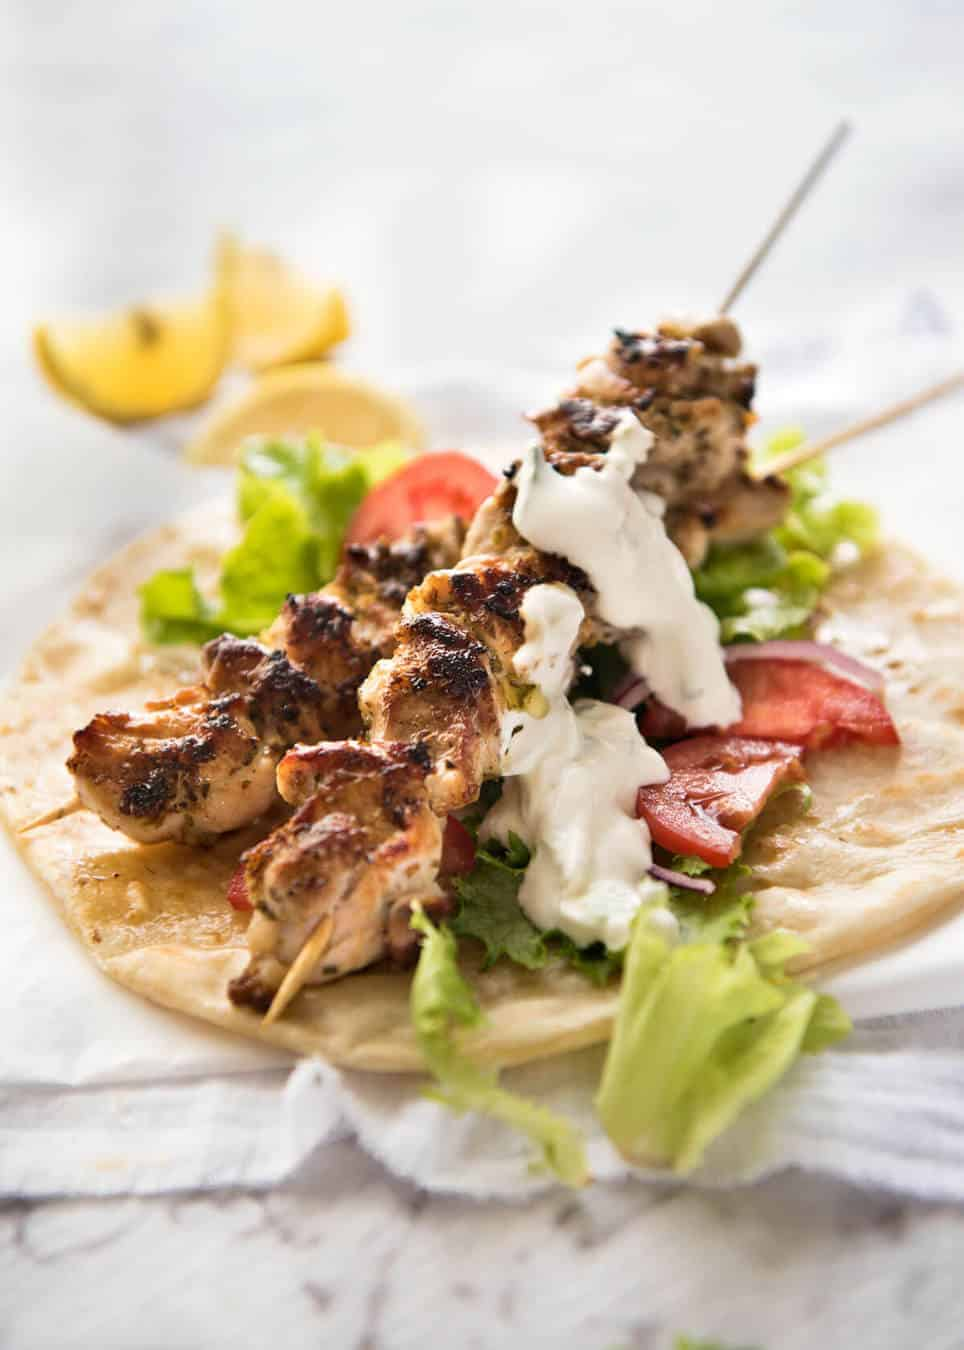 Chicken Souvlaki - Made with hen marinated in lemon, garlic and oregano, it be so basic to make this Greek favorite at home! recipetineats.com